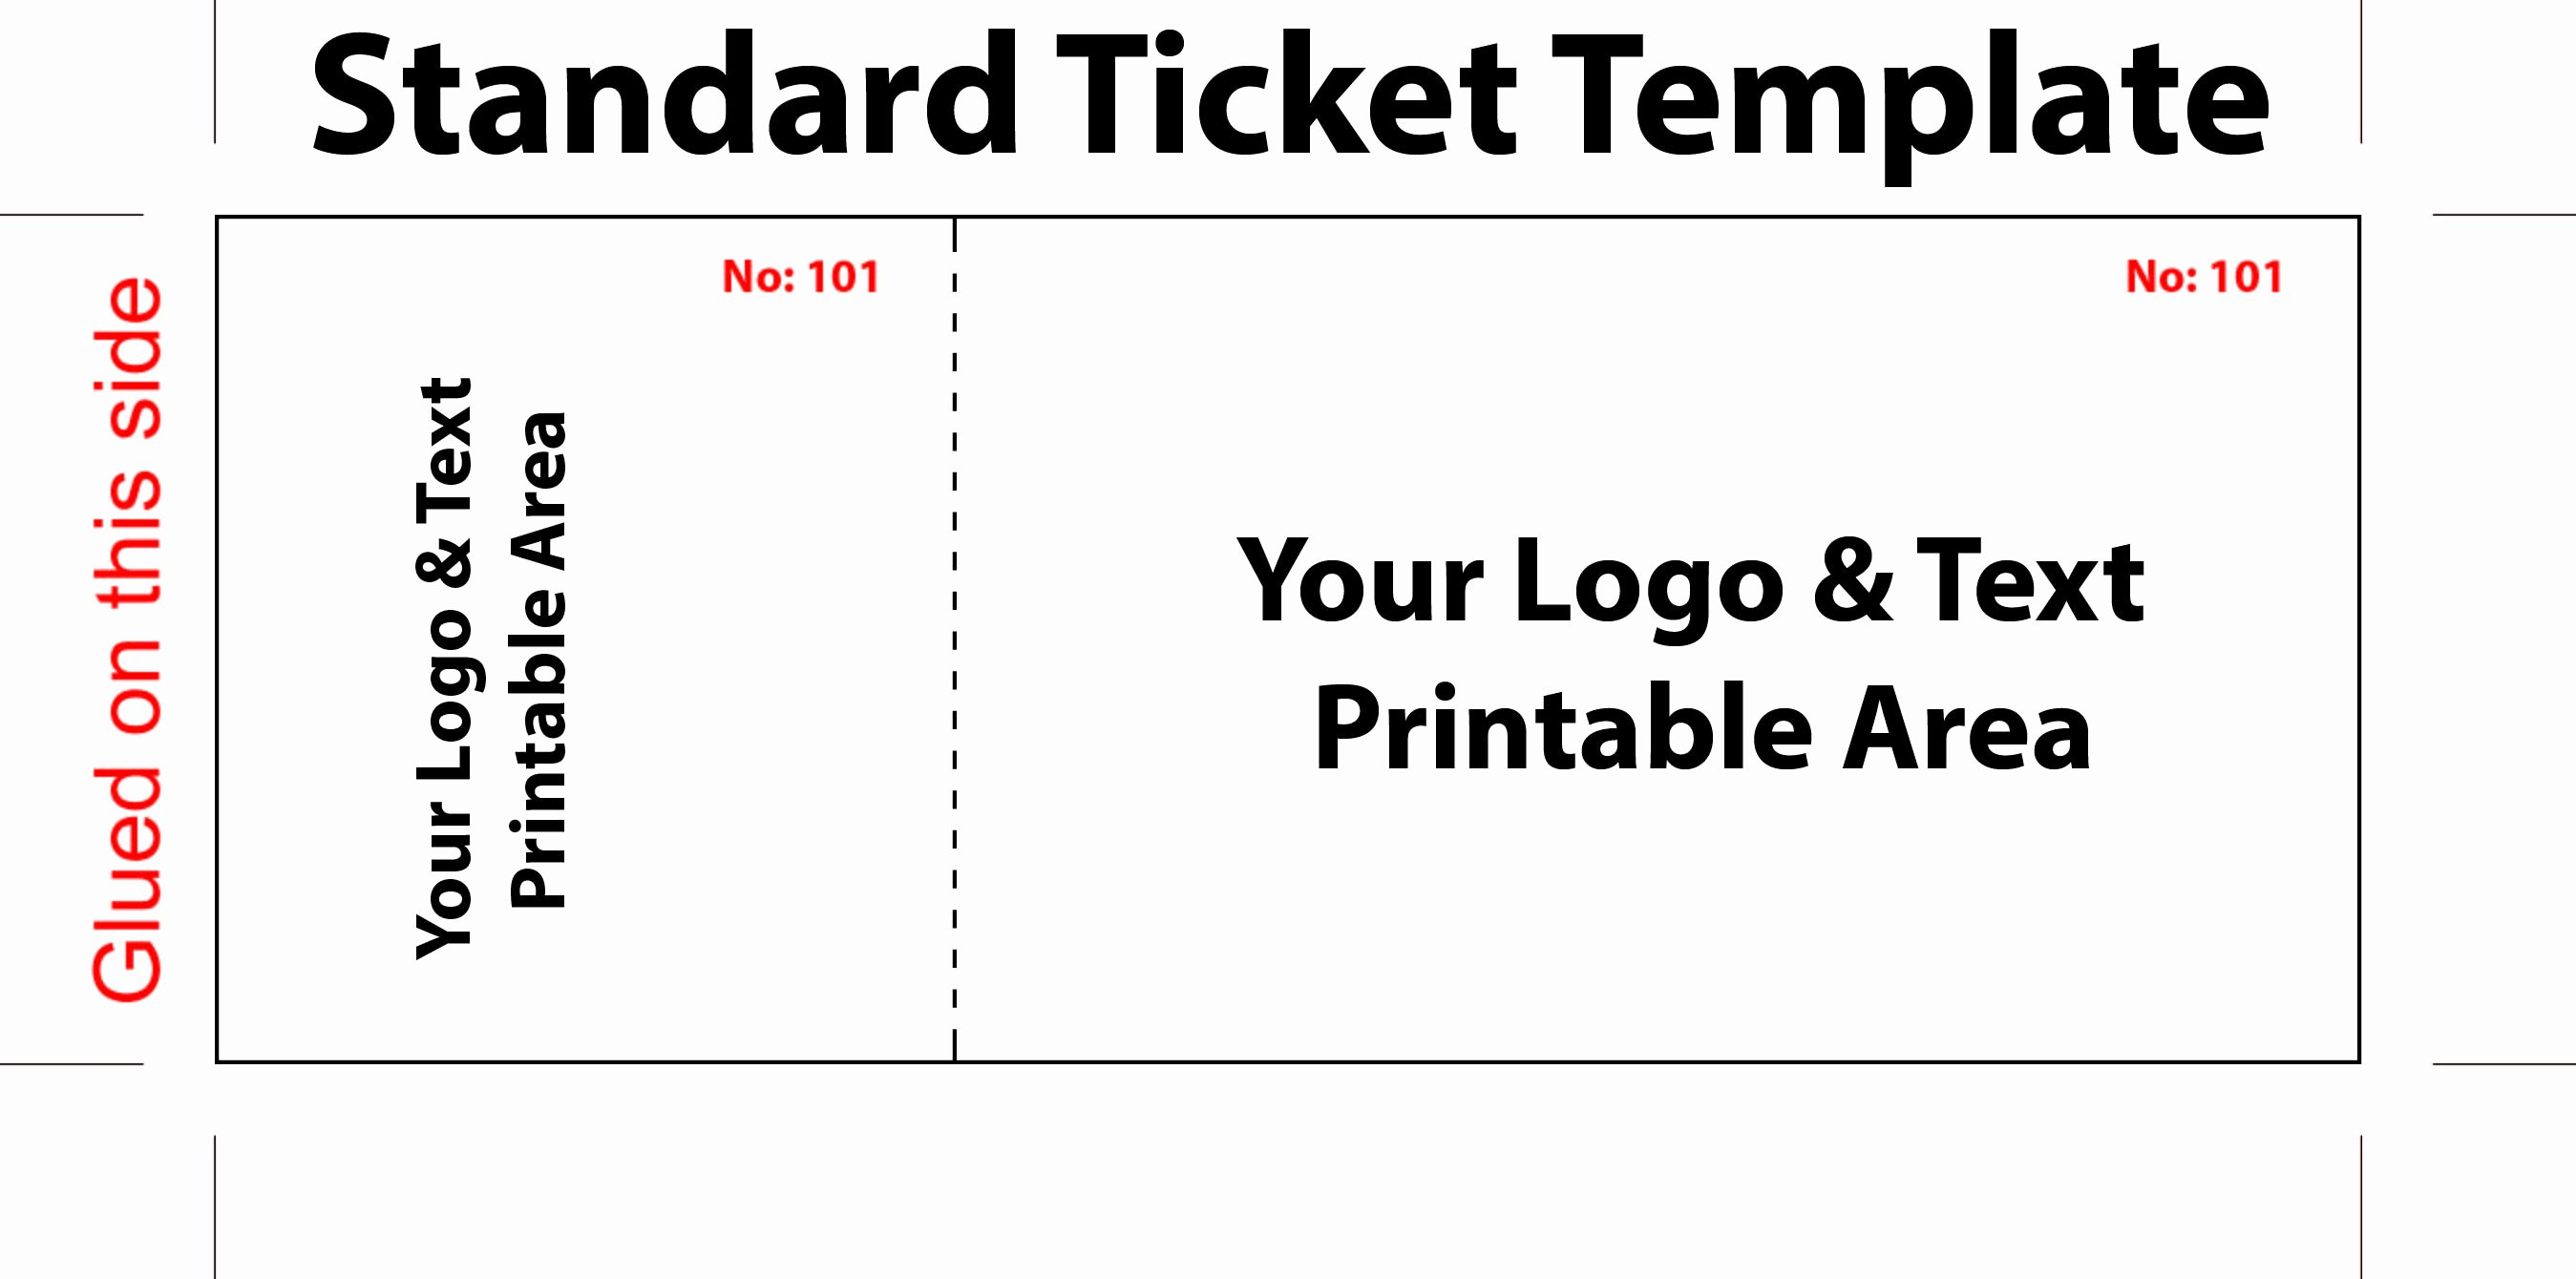 Concert Ticket Template Free Fresh Free Editable Standard Ticket Template Example for Concert